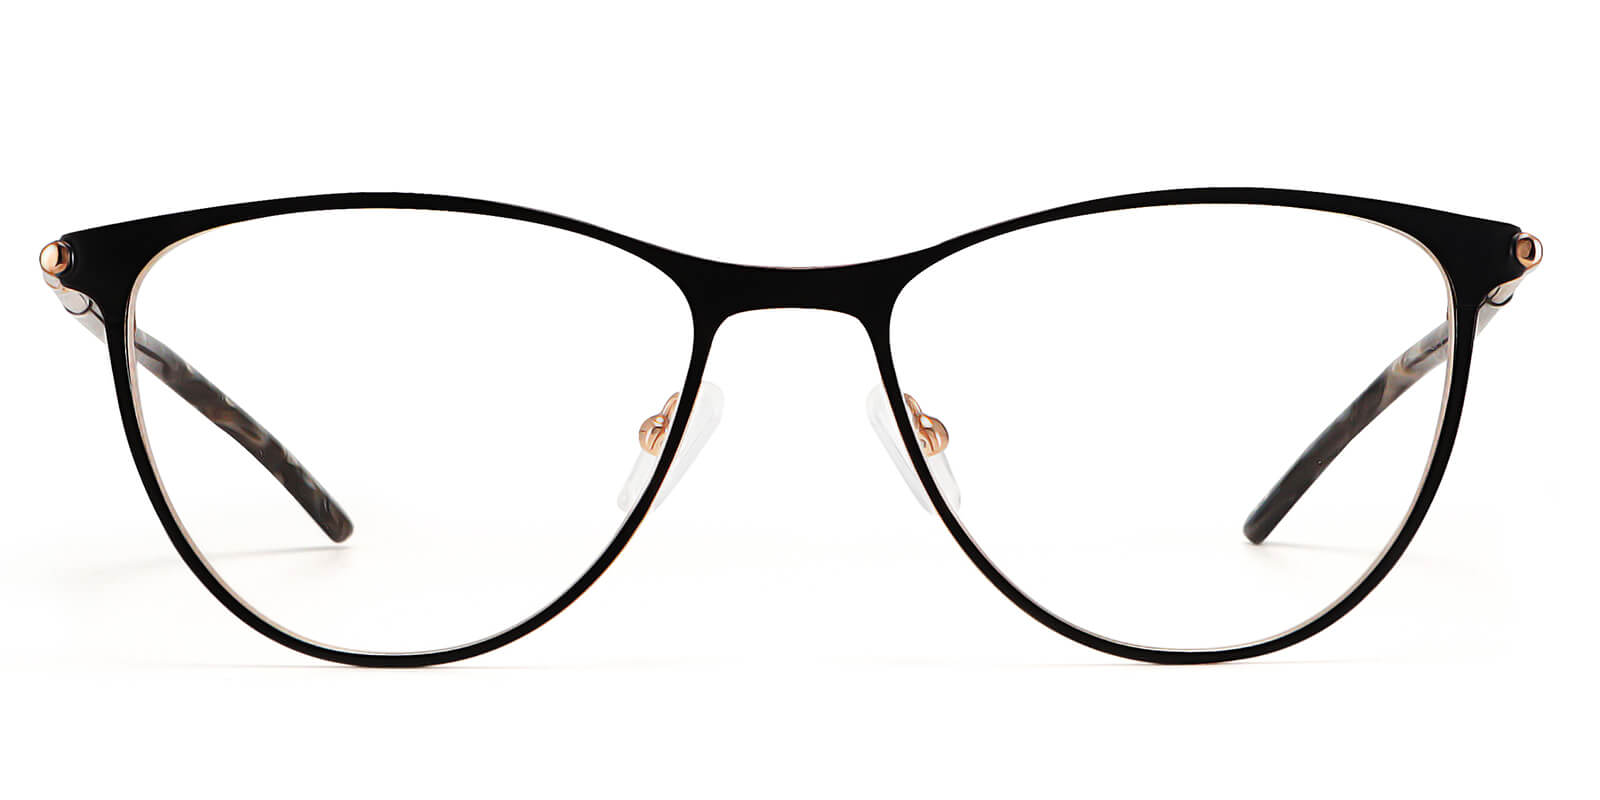 Beverly-Metal frame glasses for women two-color electroplated ultra-thin design